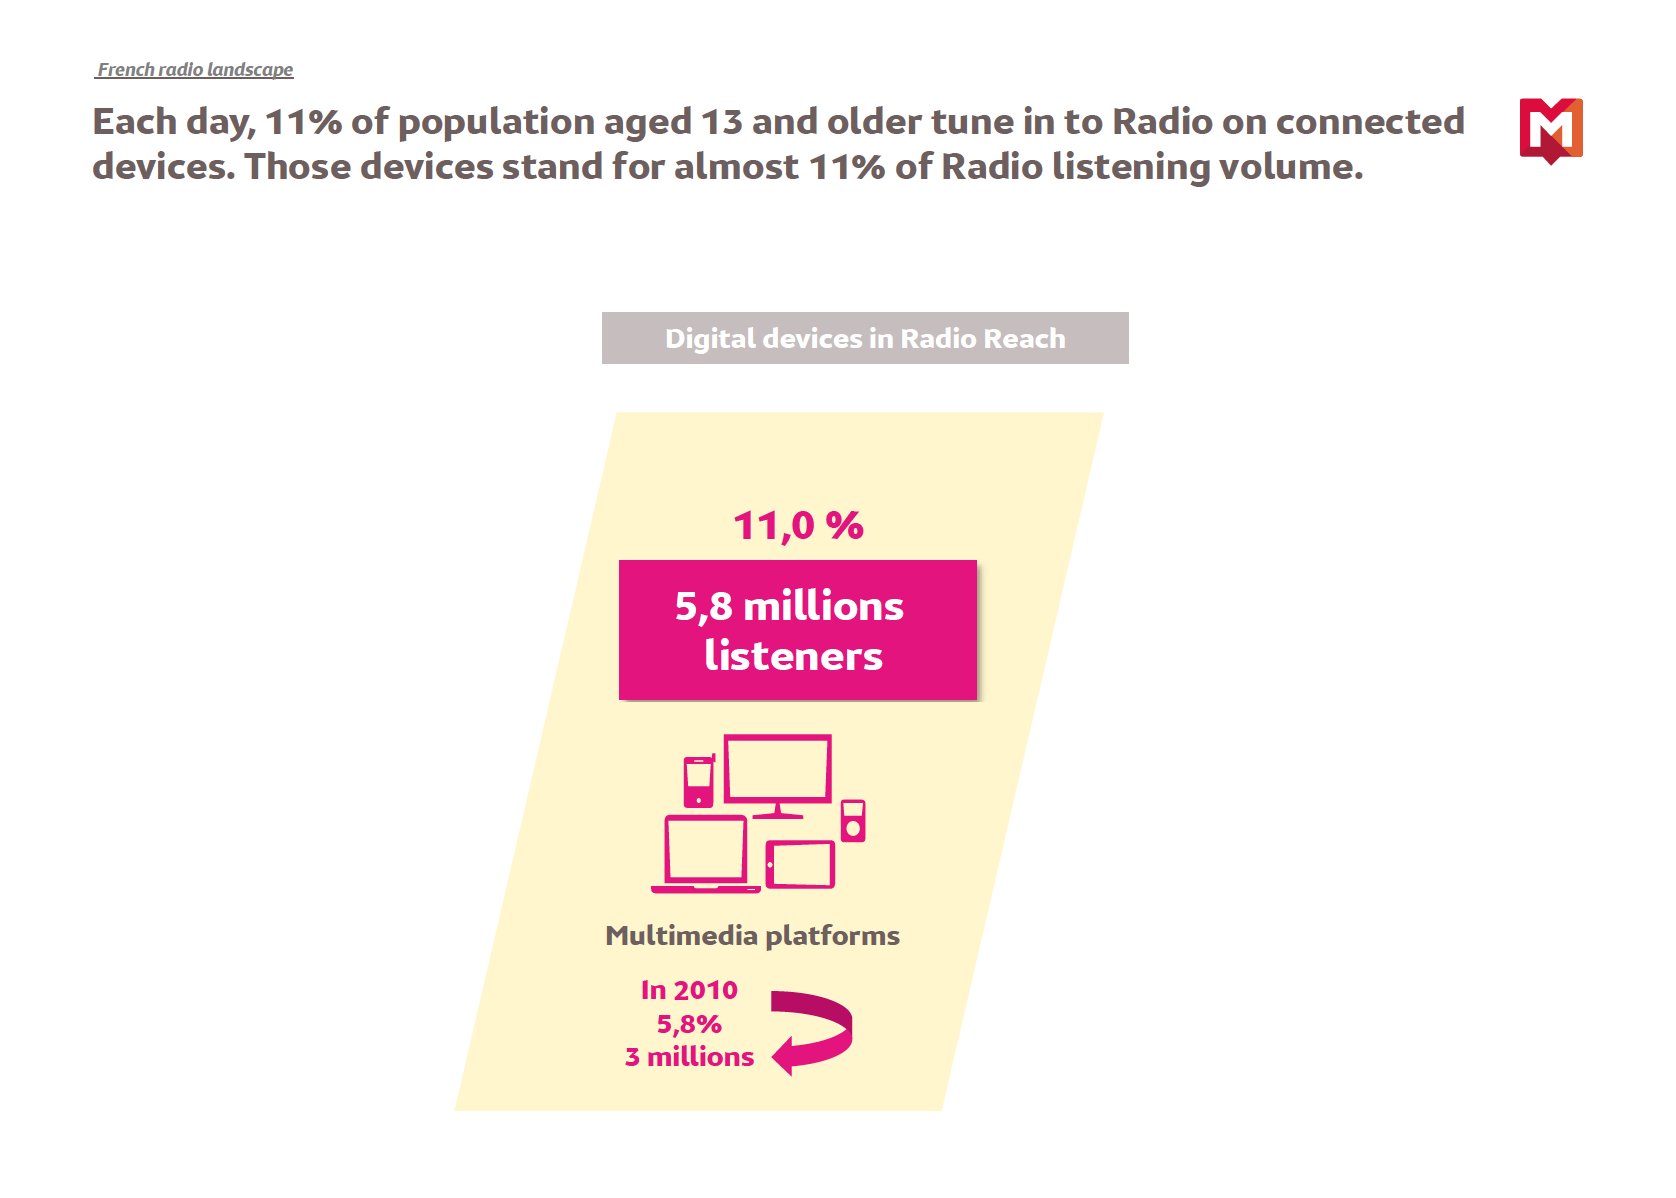 Global Radio 2015 – Reach and contribution, Monday to Friday, 05h/24h, population aged 13 and older